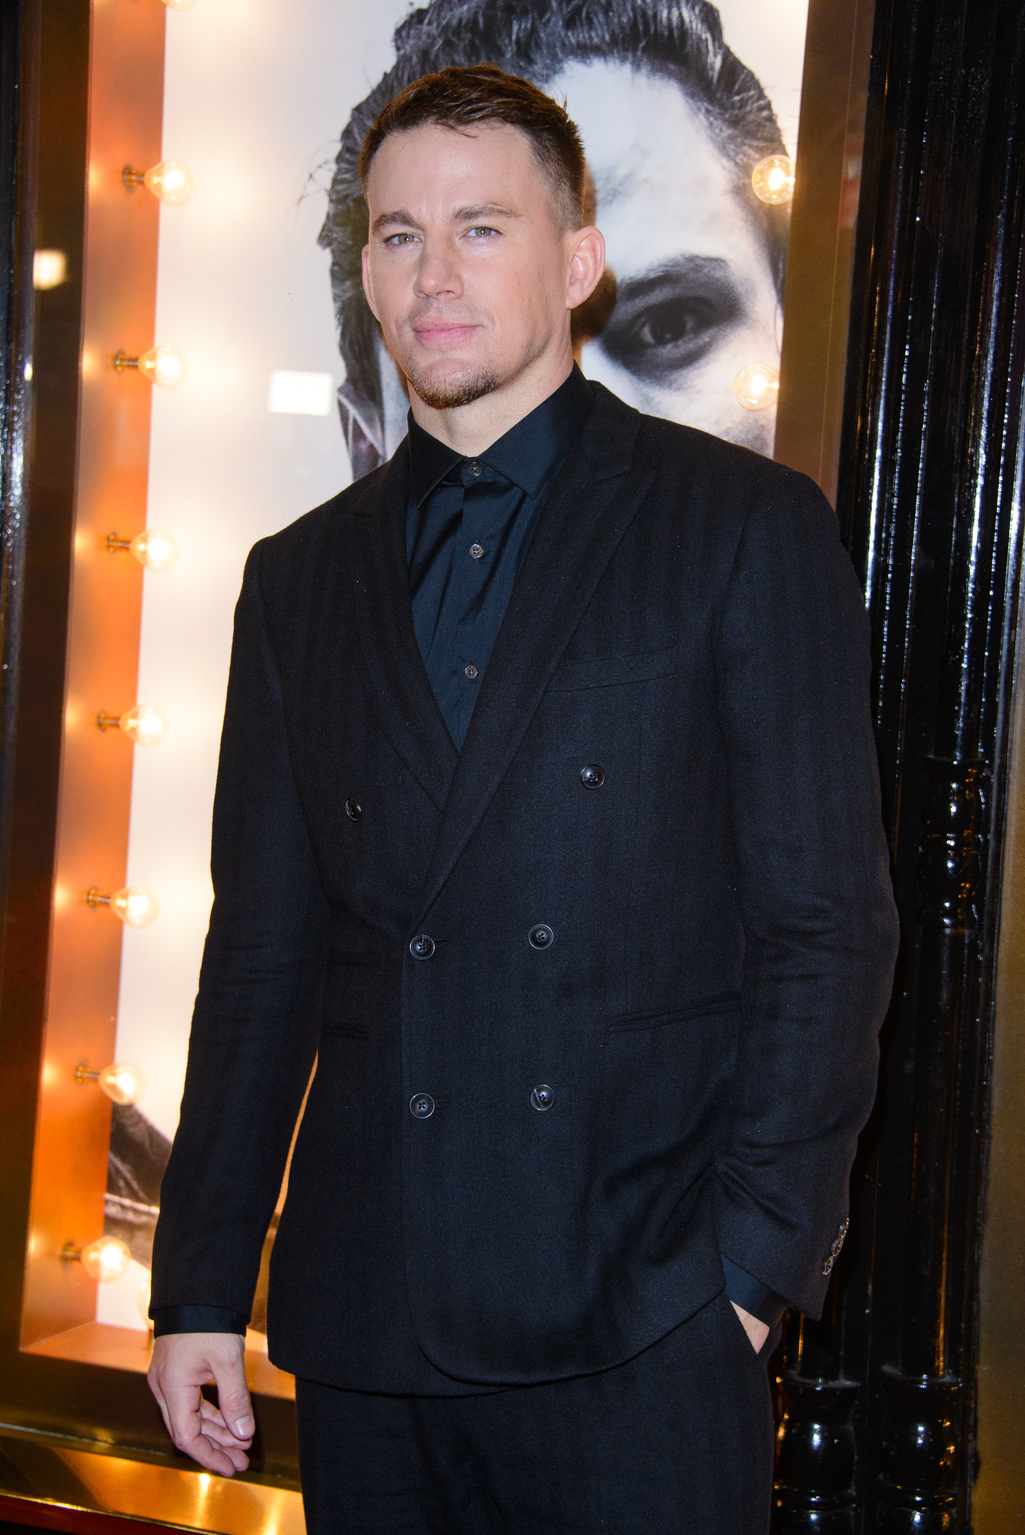 Channing Tatum (Fotó: Getty Images/Joe Maher)